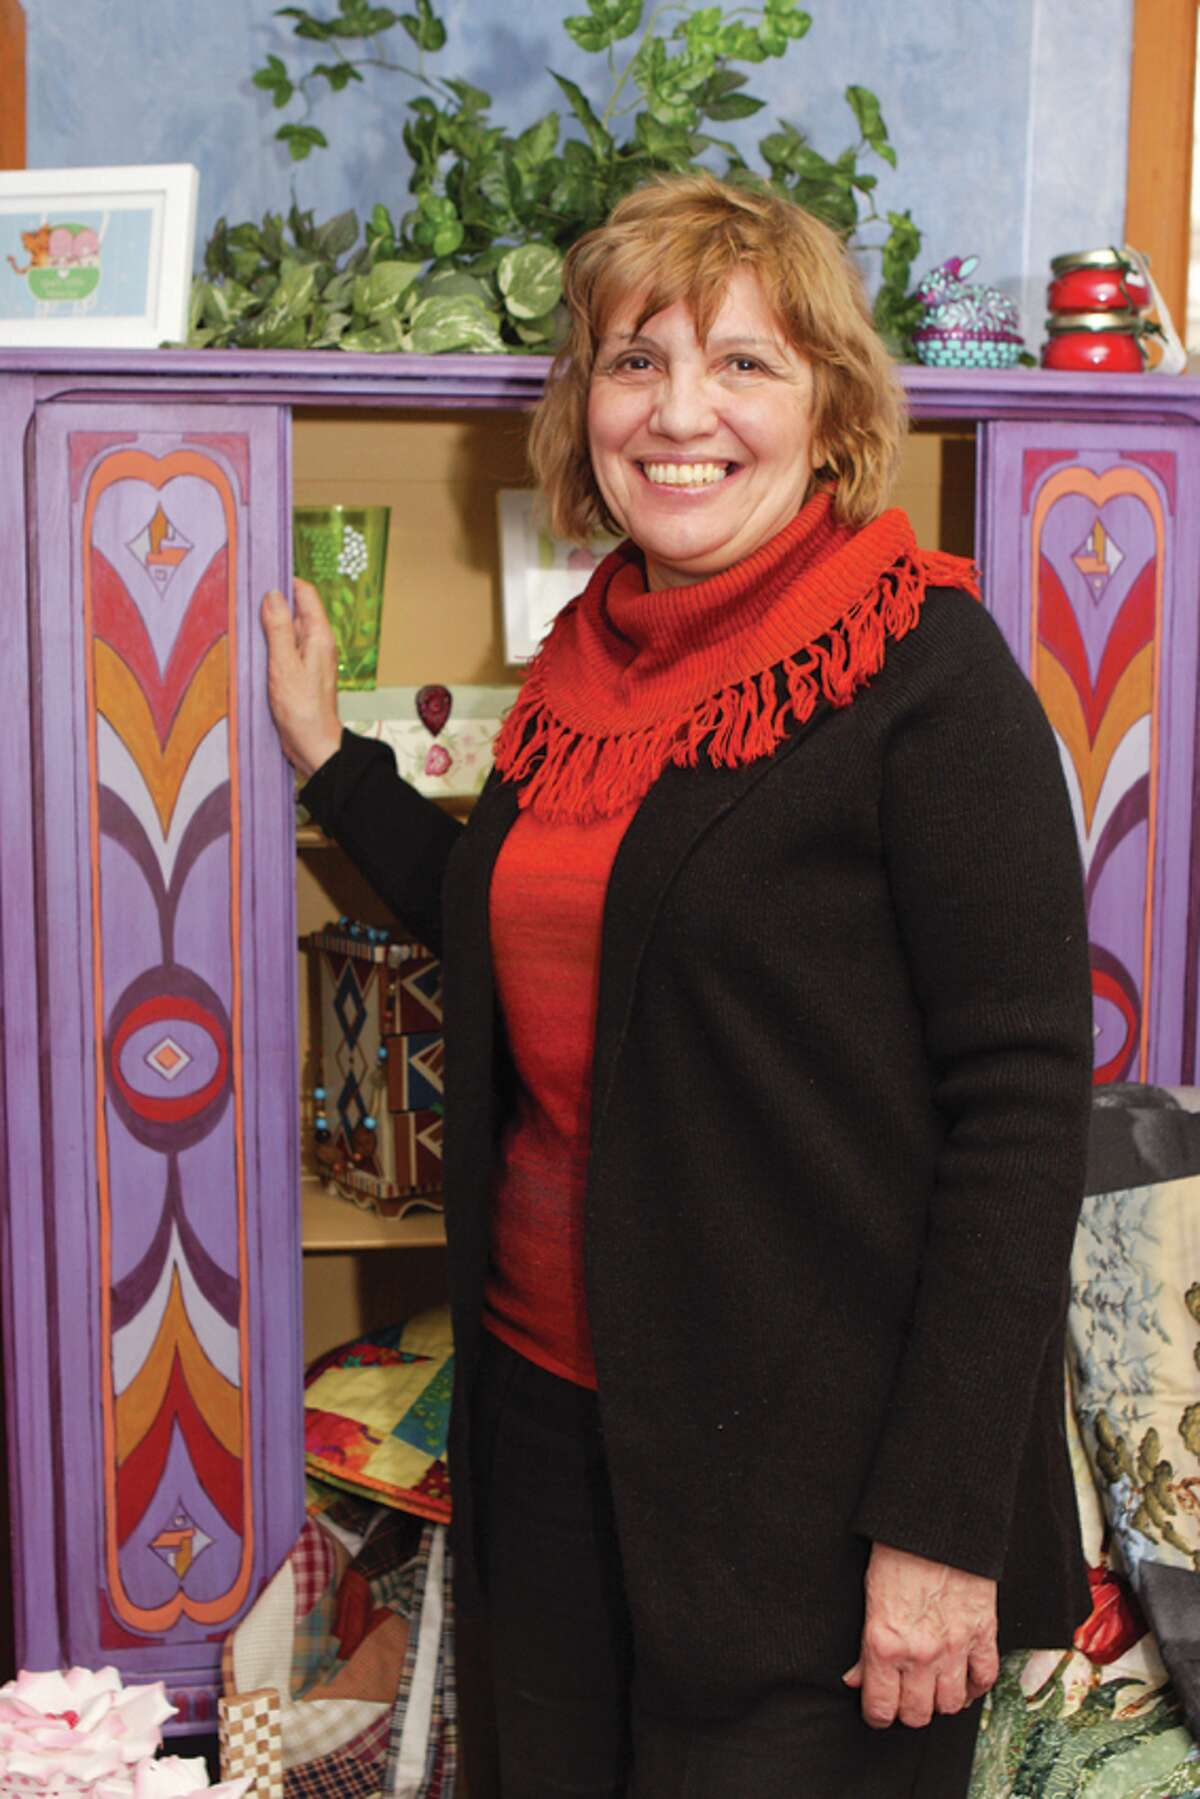 Artisan Rosemary Prock transforms everything from furniture to walls. (Krishna Hill/Life@Home) Click here to read the story.